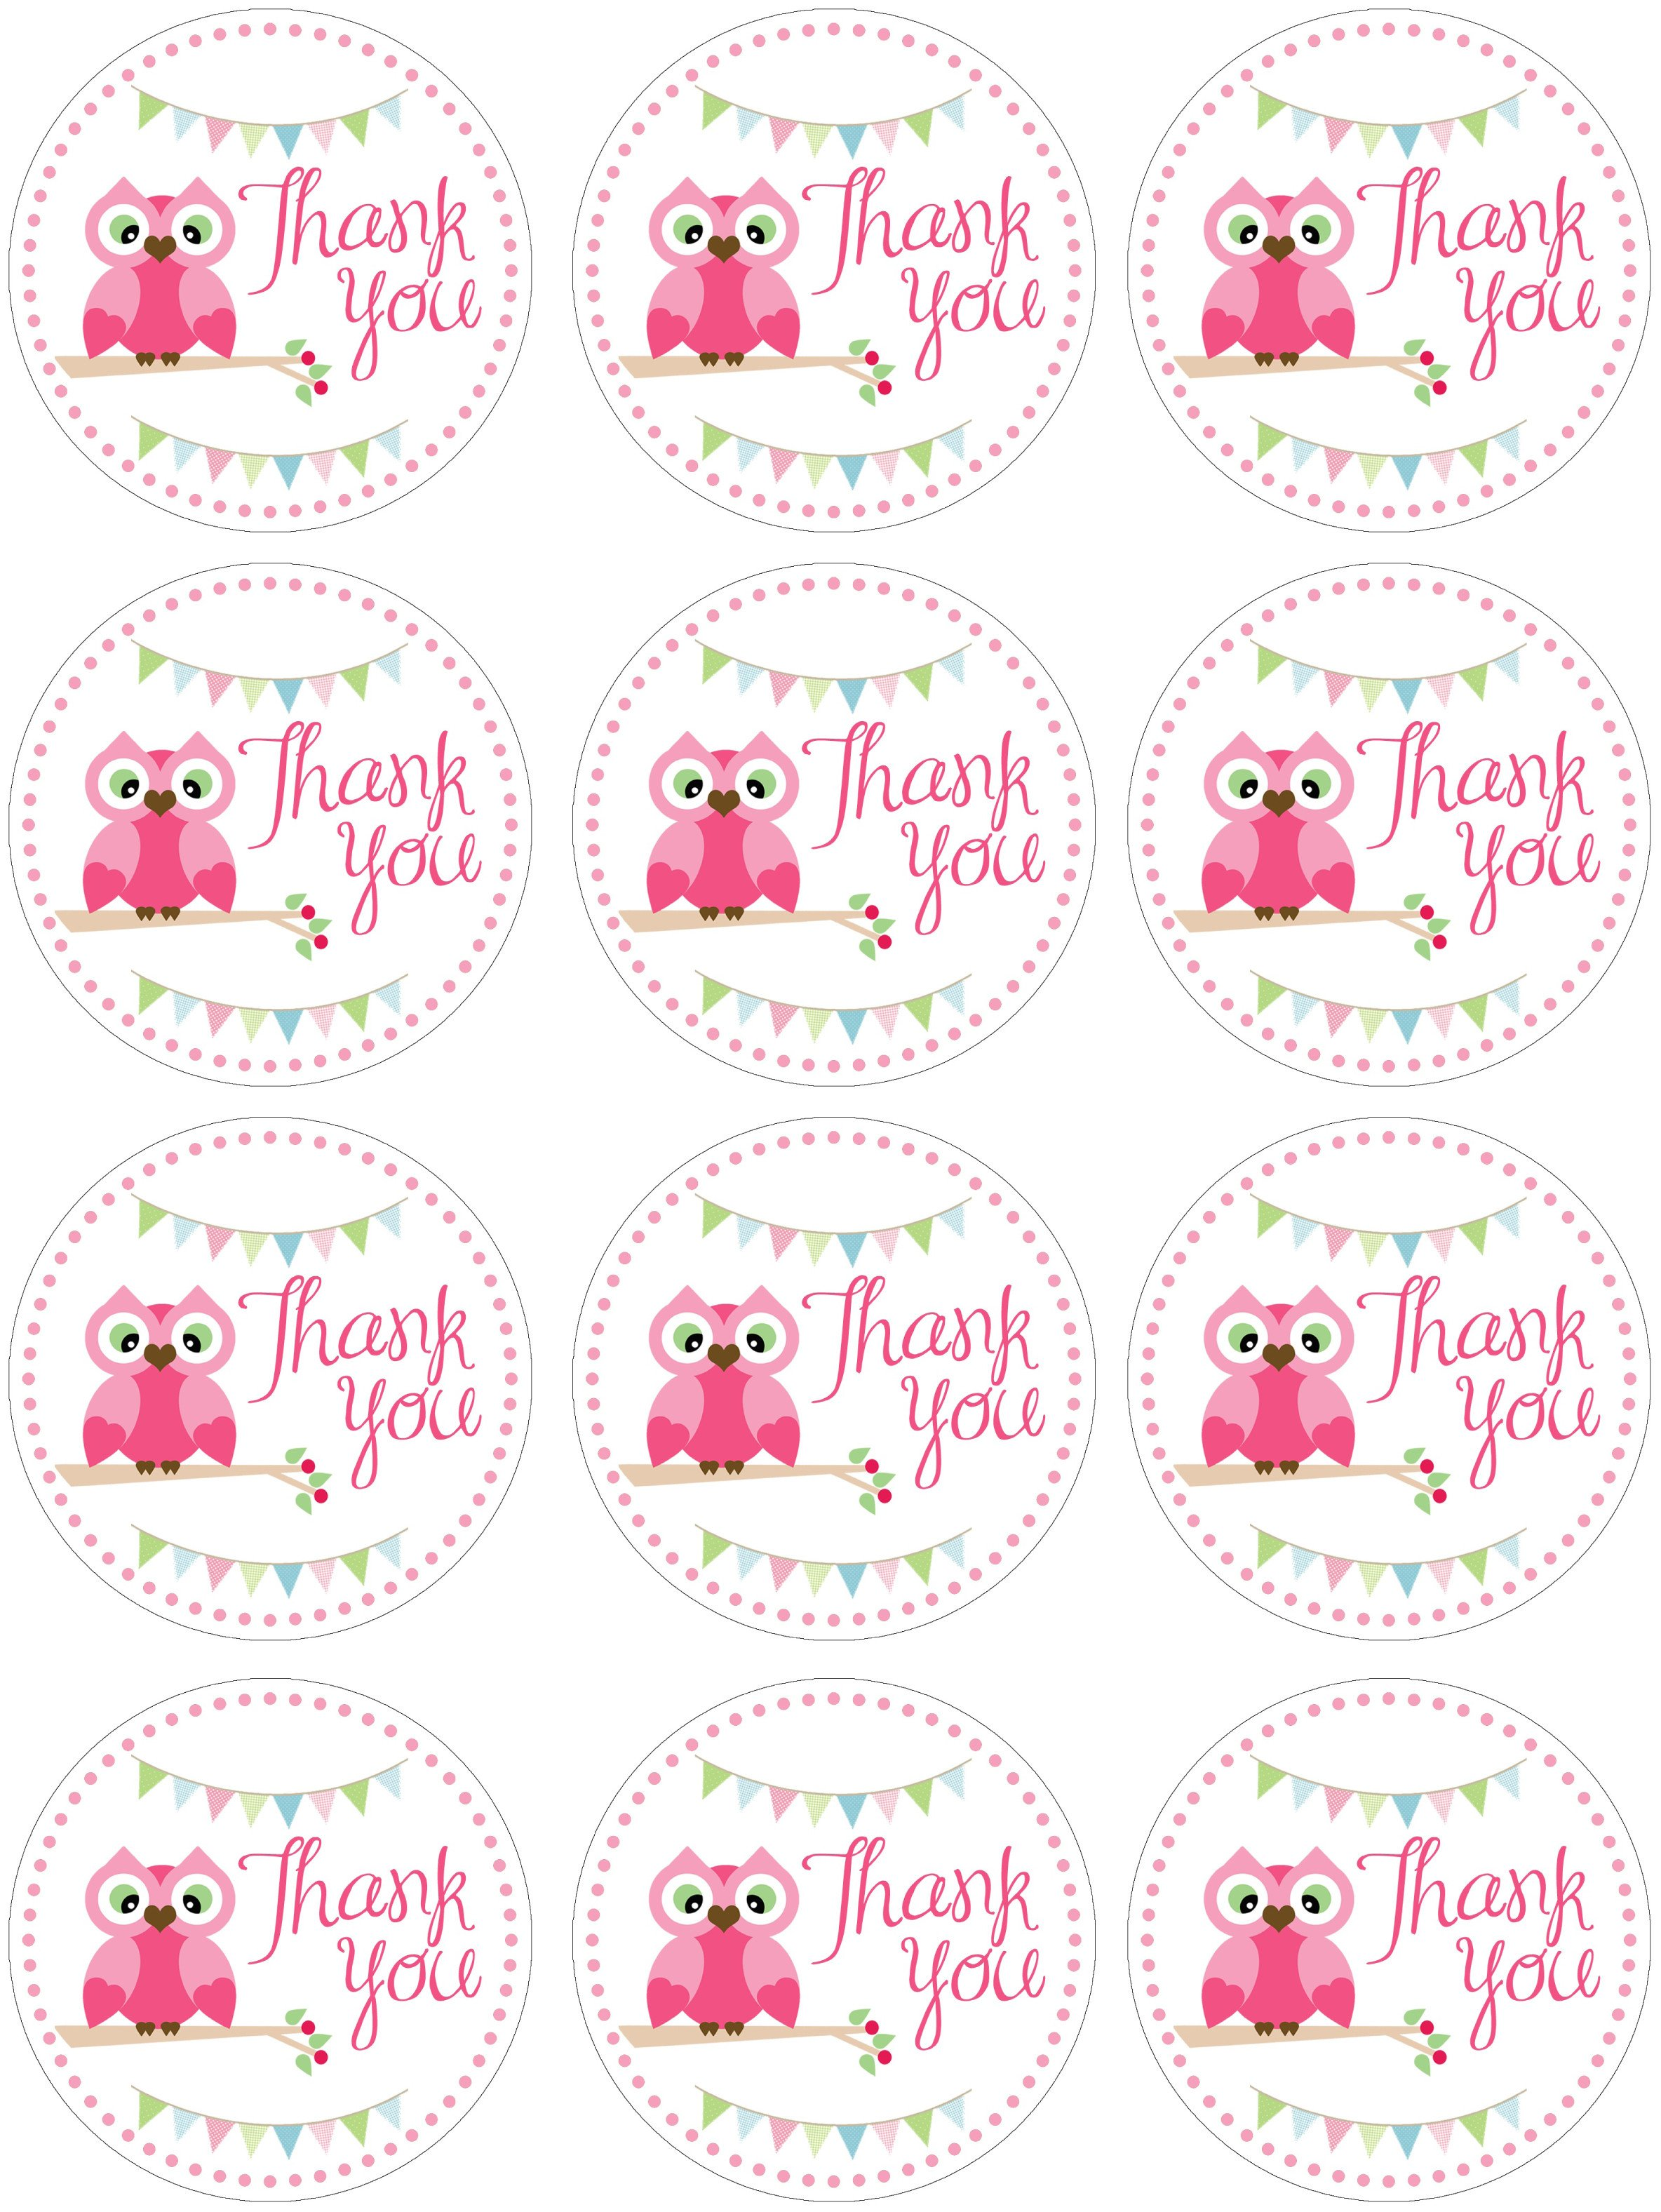 Free Printable Favor Tags Owl themed Birthday Party with Free Printables How to